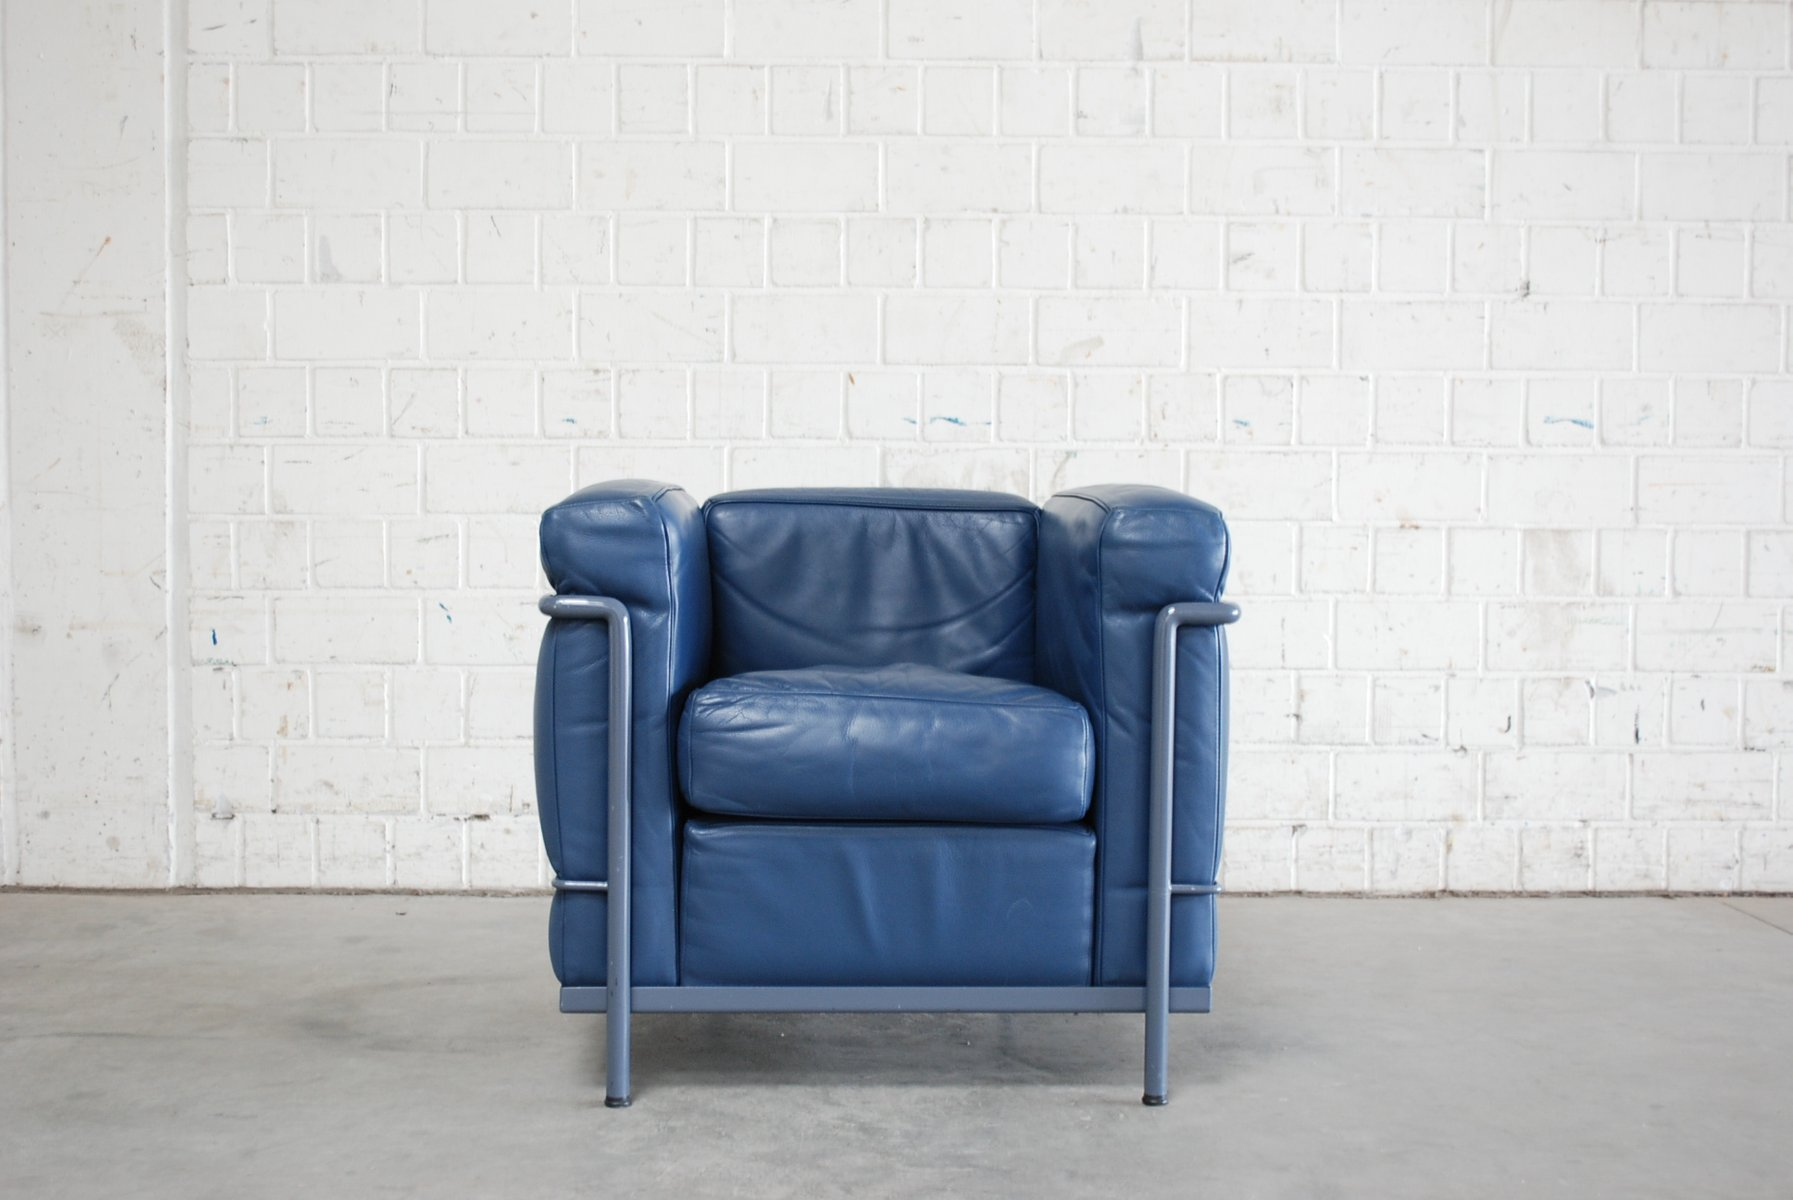 Superior Vintage Blue Model LC2 Leather Chair By Le Corbusier For Cassina Amazing Ideas